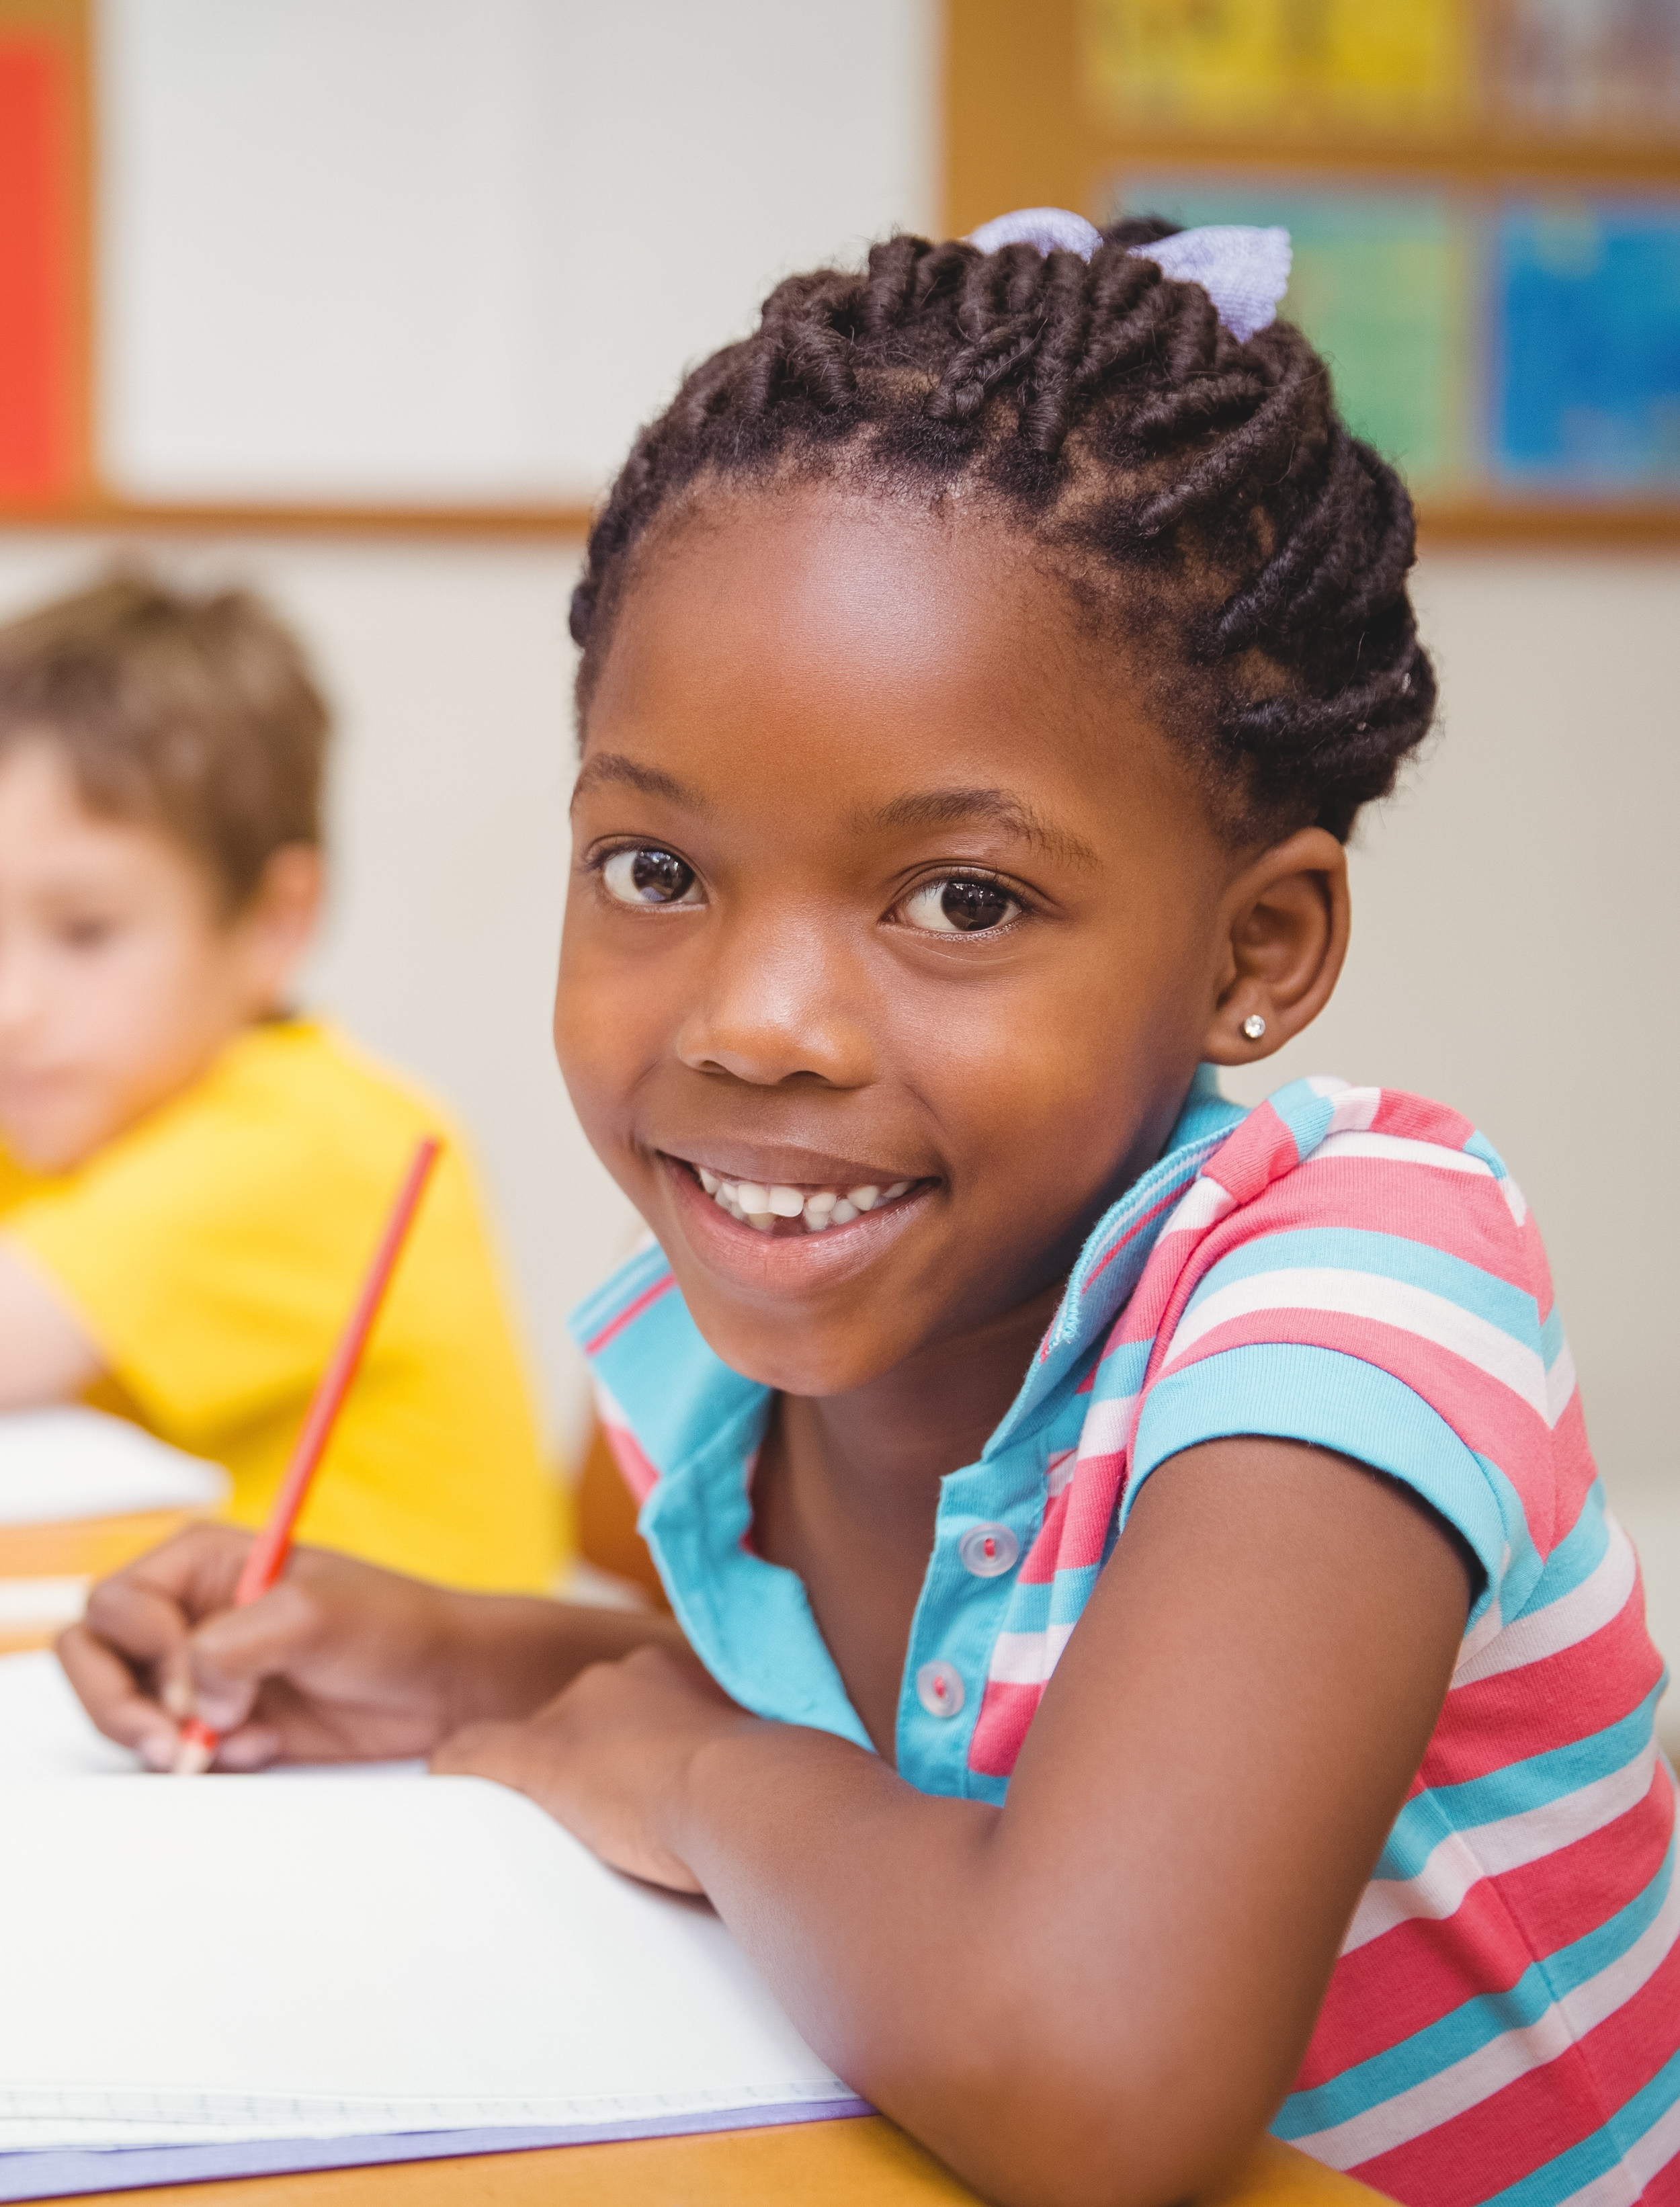 Classroom-Based Behavioral Data collection